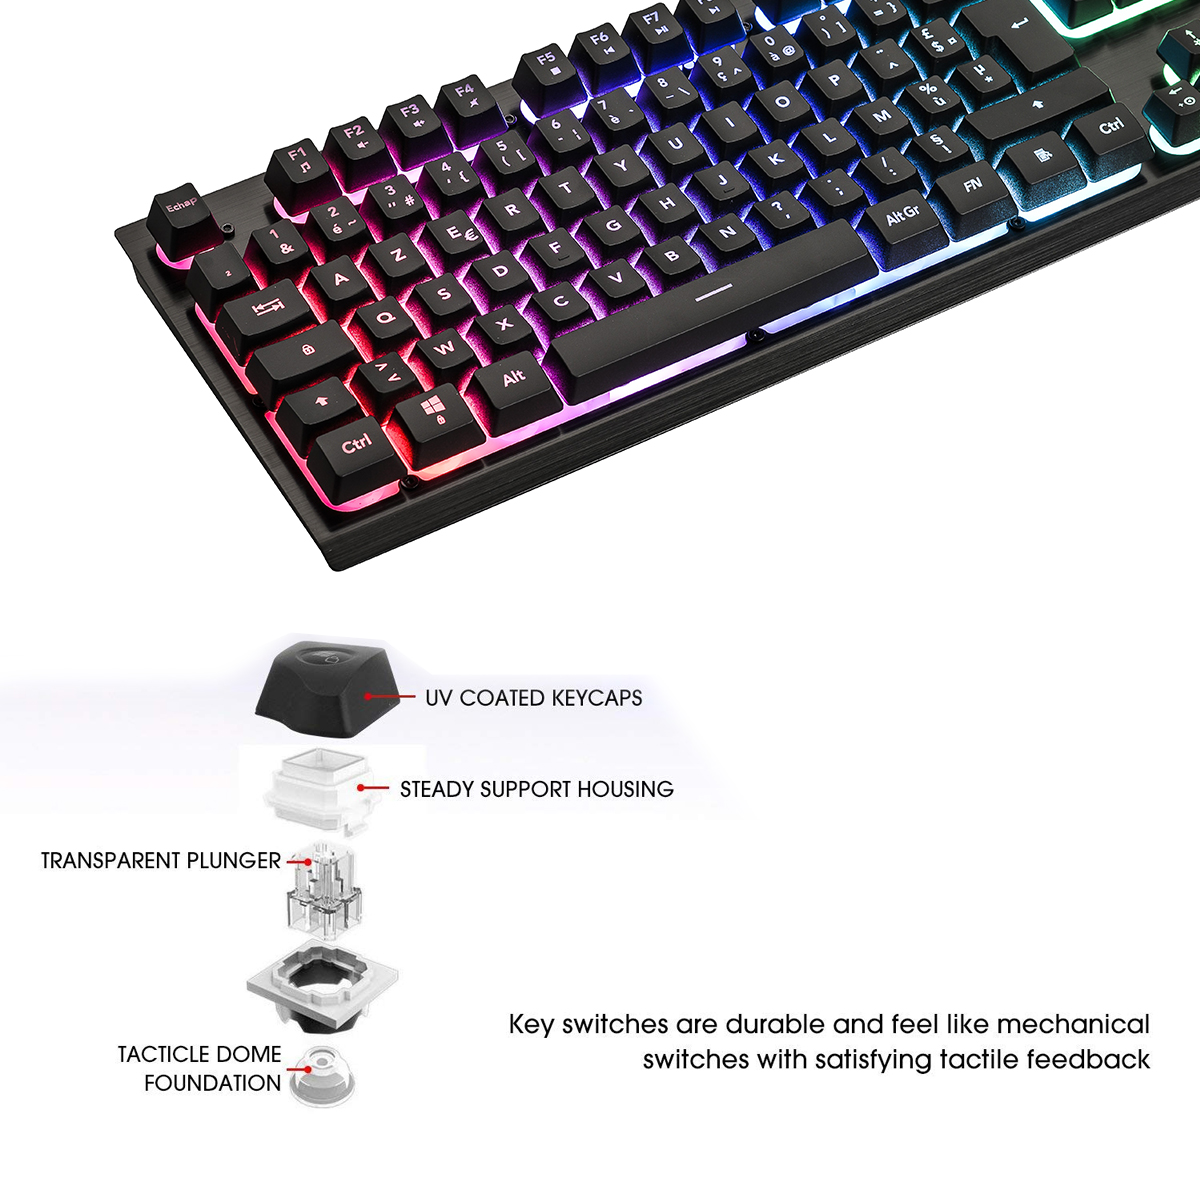 G081 RGB Flowing Illuminate Wired French Backlit Gaming Mouse keyboard Set similar Mechanical keyboard feel PC Gamer keyboard in Keyboard Mouse Combos from Computer Office